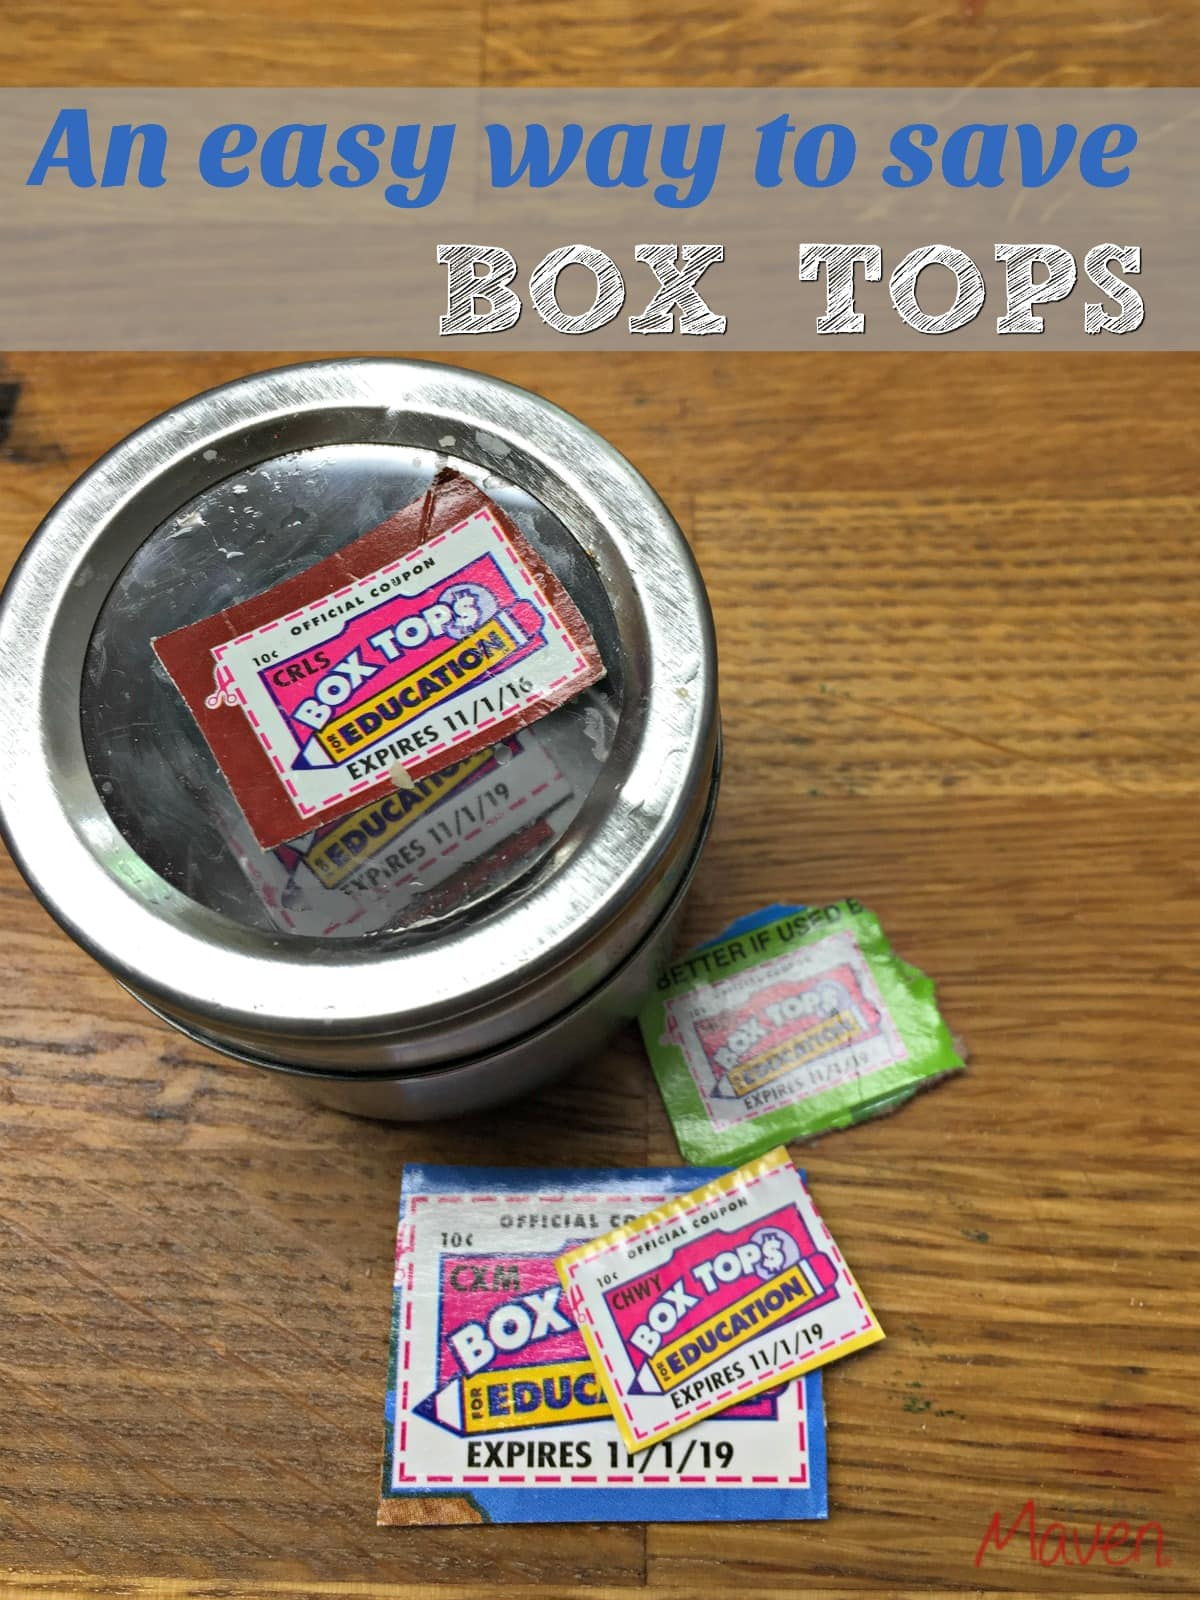 Check out this easy way to save Box Tops.